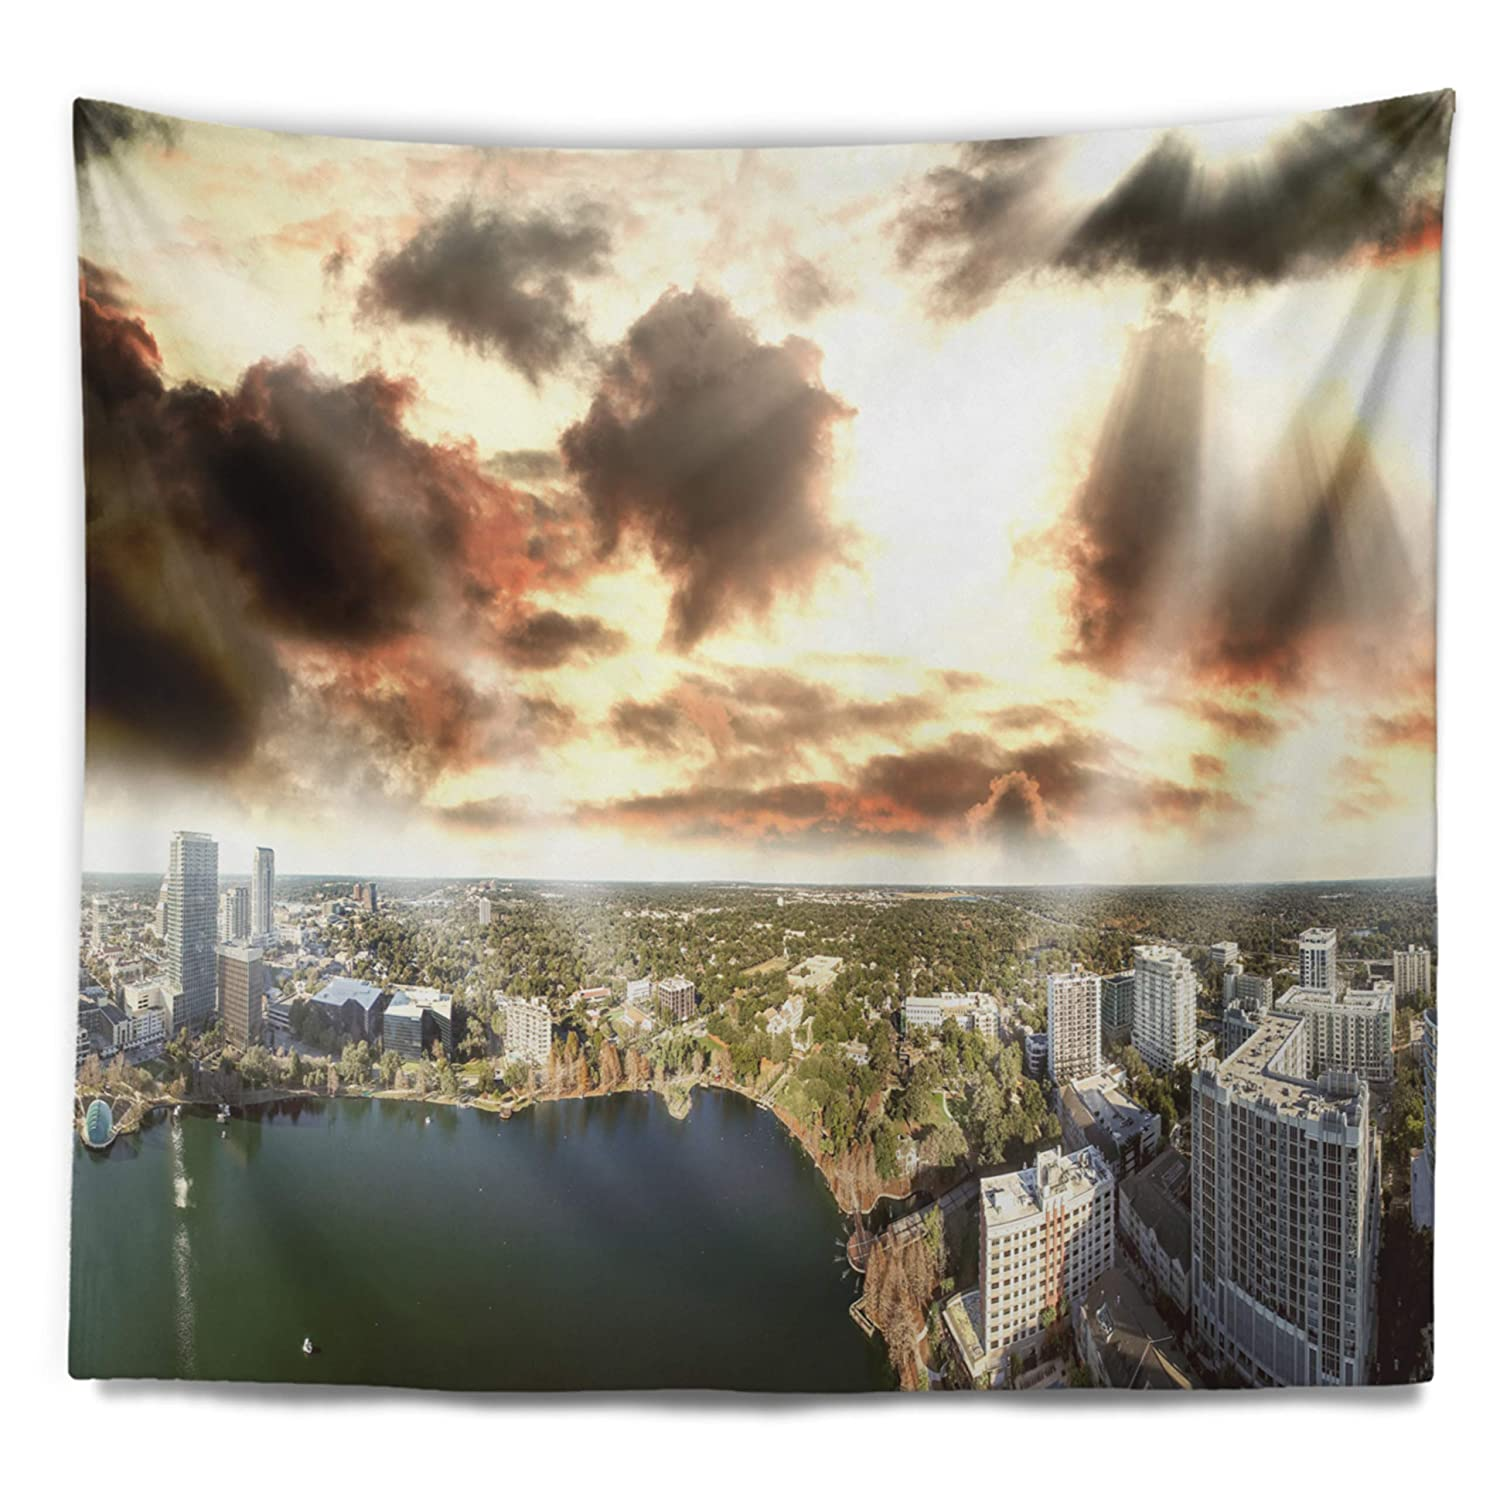 60 in x 50 in Created On Lightweight Polyester Fabric Designart TAP10846-60-50  Downtown Orlando Sunset Aerial Seascape Blanket D/écor Art for Home and Office Wall Tapestry Large